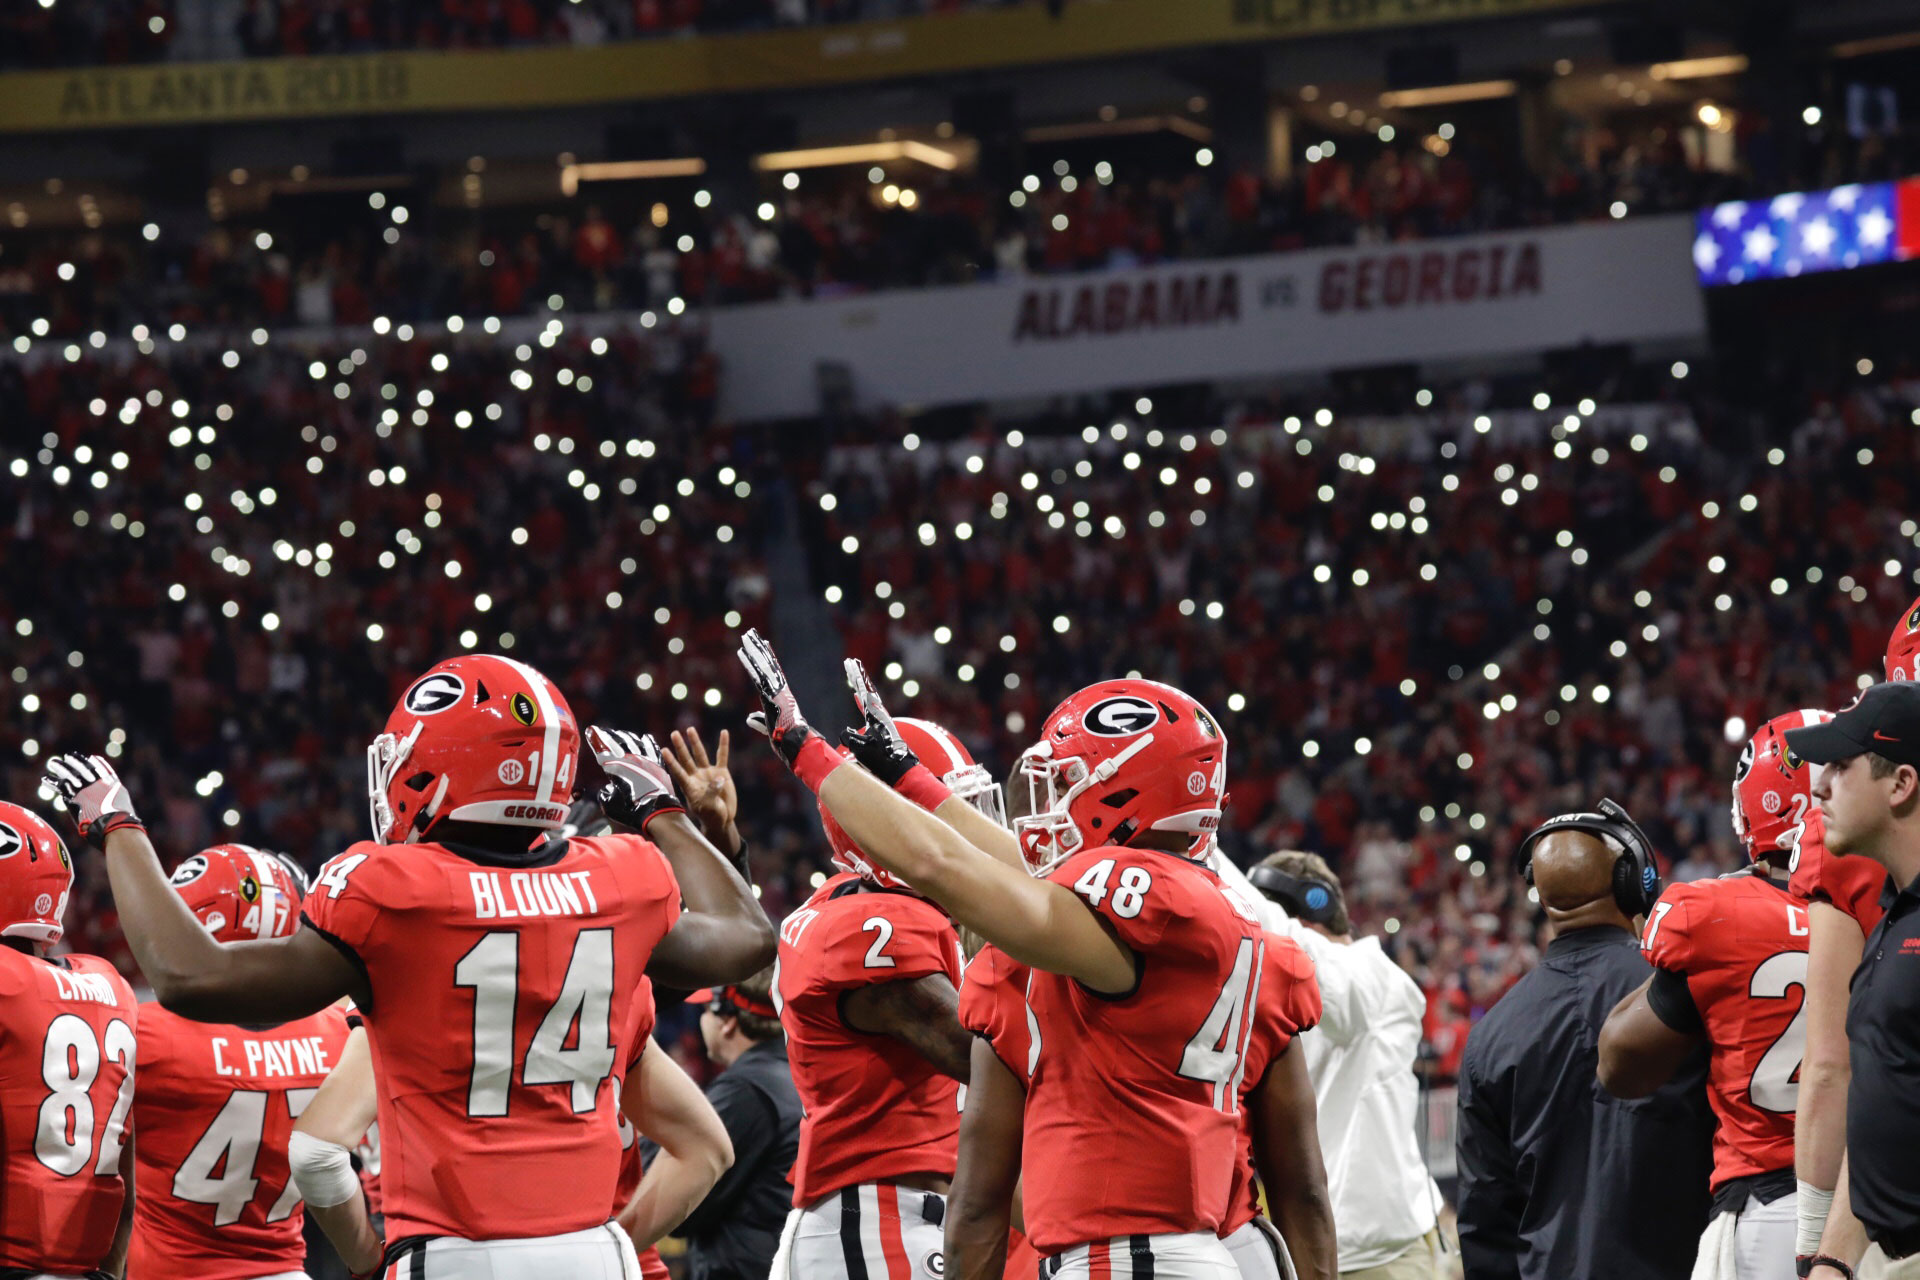 Football Team S Remarkable Season Ends With No 2 Ranking In Ap Poll Uga Today